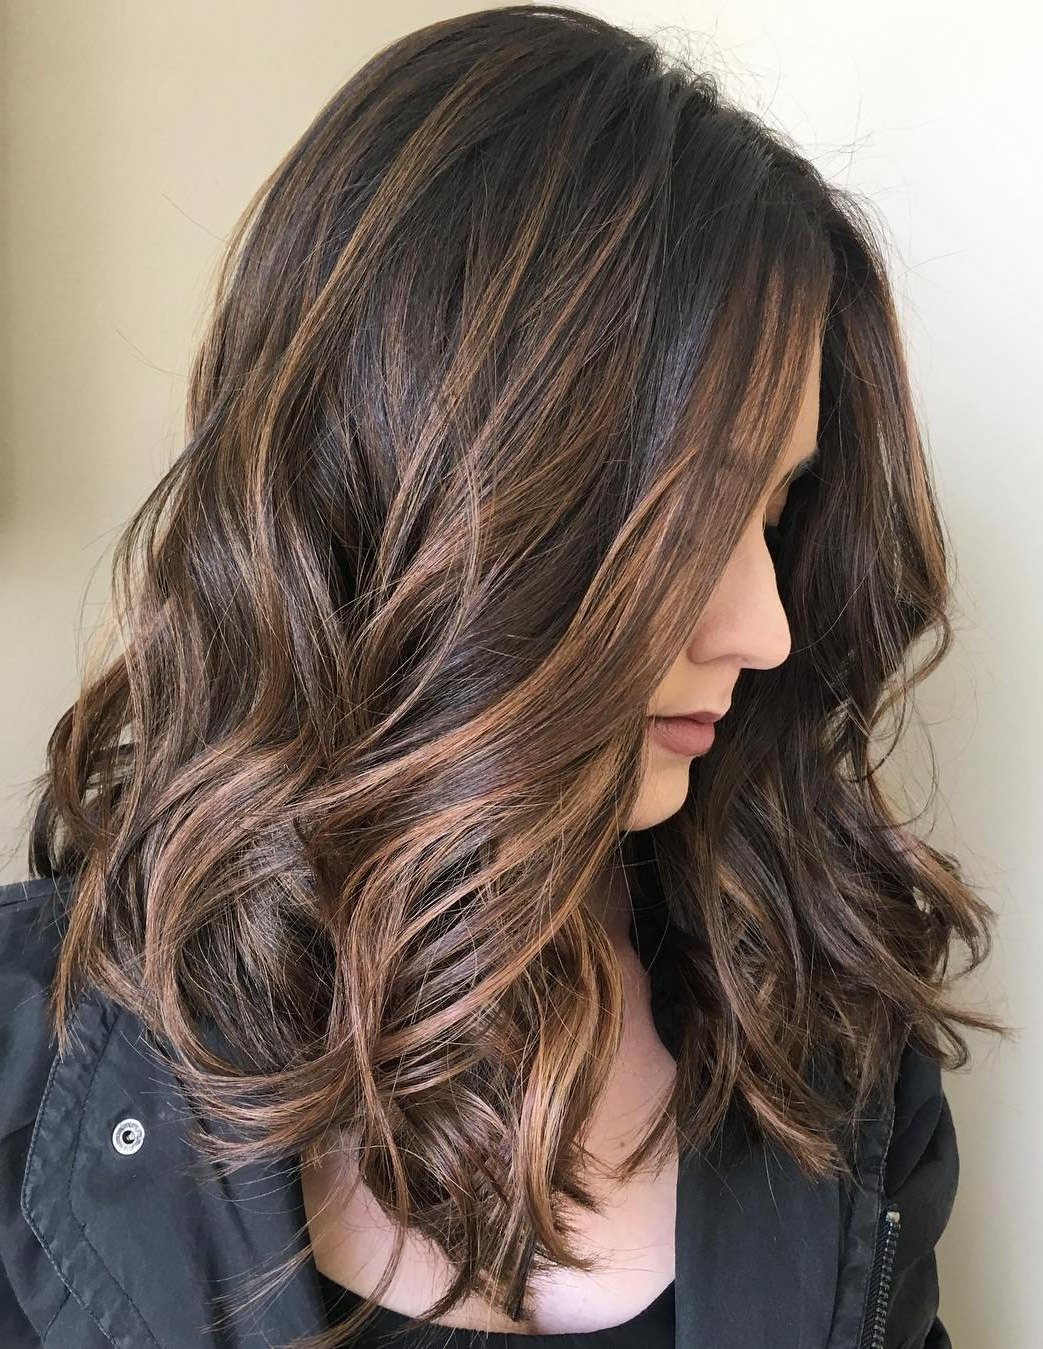 70 Balayage Hair Color Ideas With Blonde, Brown And Caramel Highlights Pertaining To Curly Dark Brown Bob Hairstyles With Partial Balayage (Gallery 6 of 25)